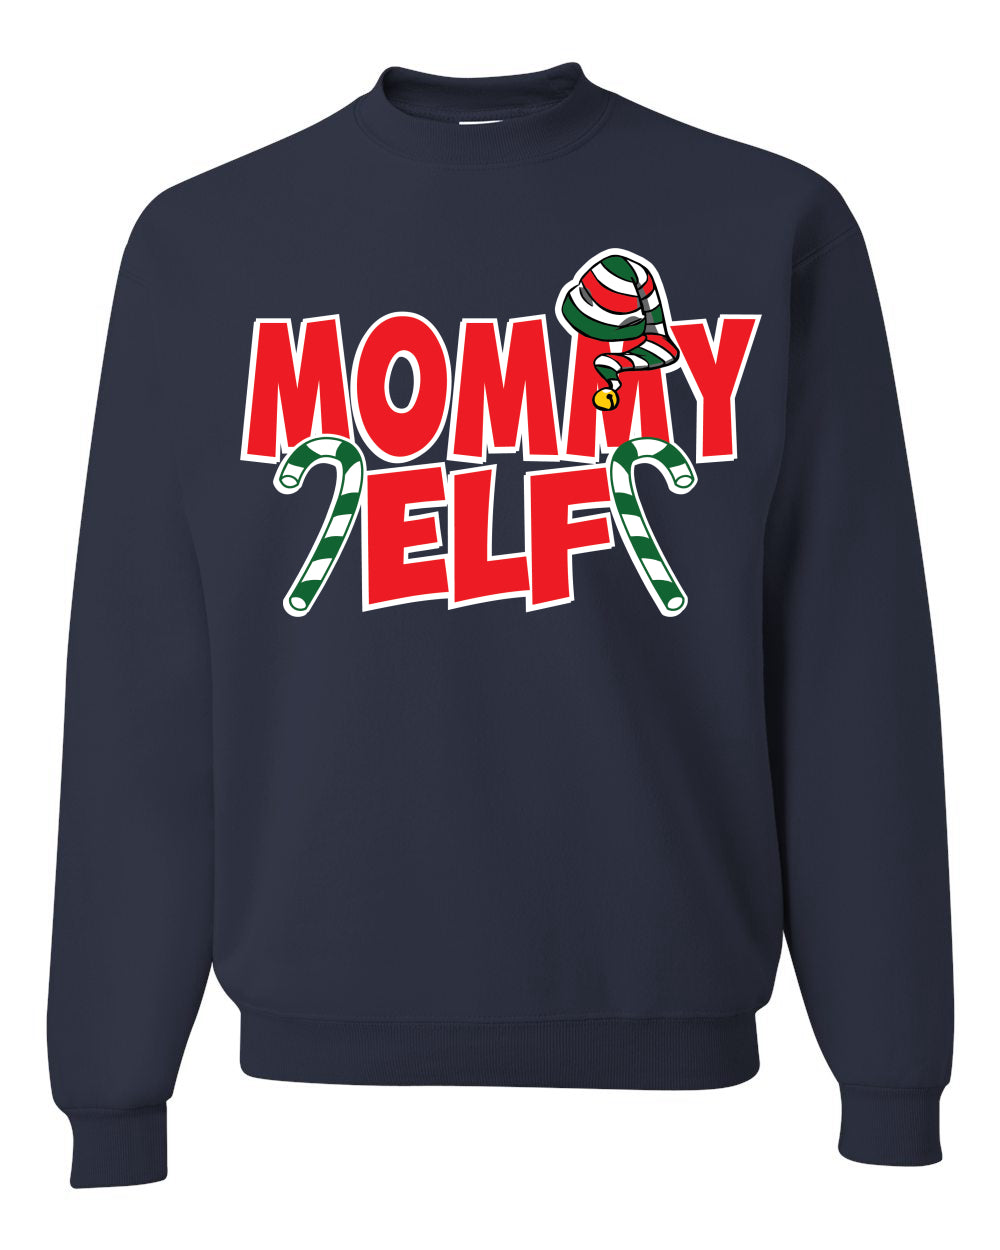 Mommy Elf Unisex Crewneck Graphic Sweatshirt